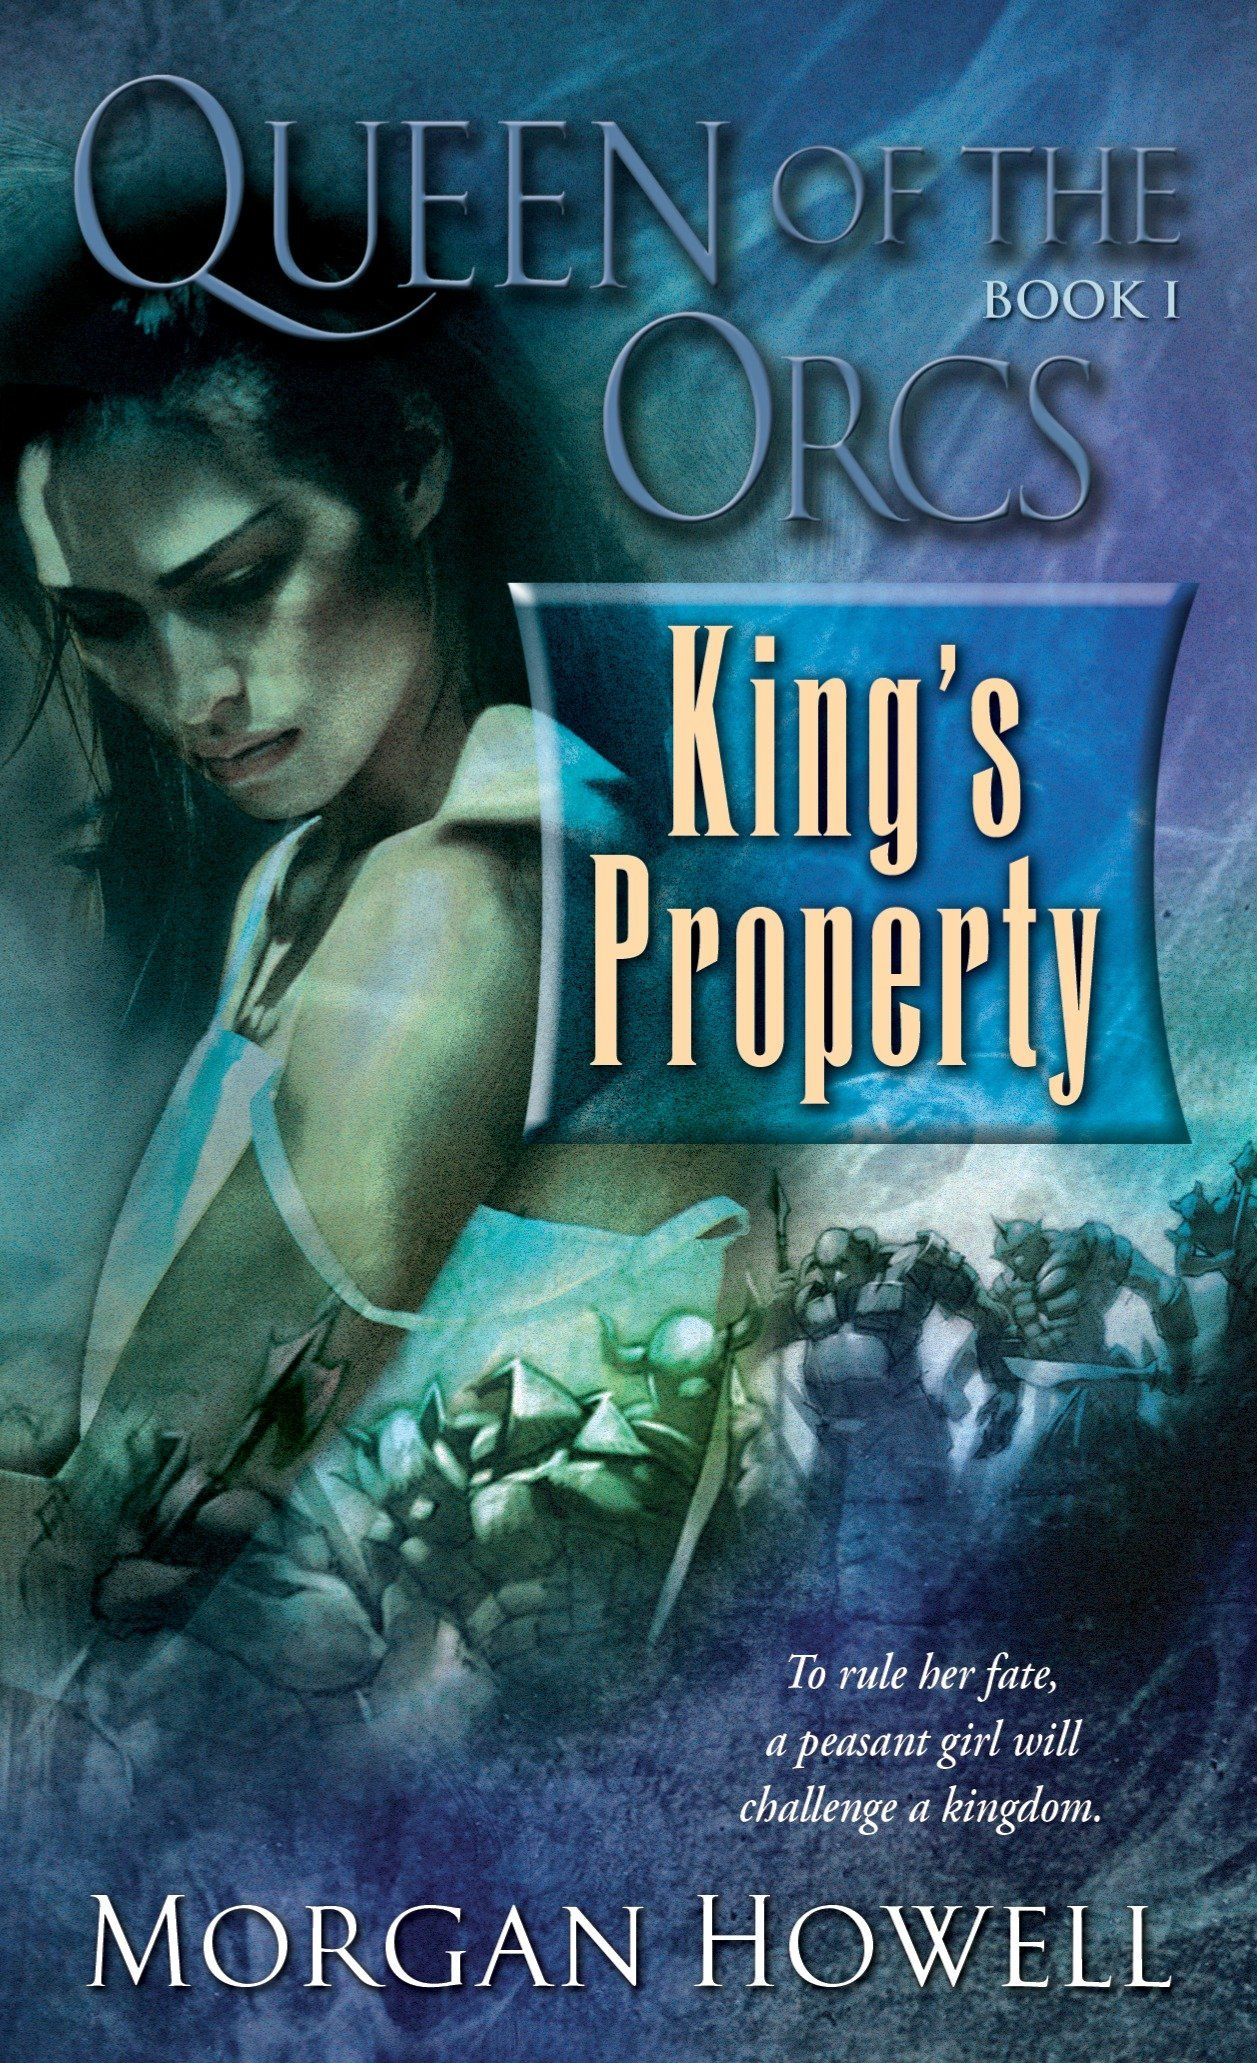 King's Property (Queen of the Orcs #1): Morgan Howell: 9780345496508